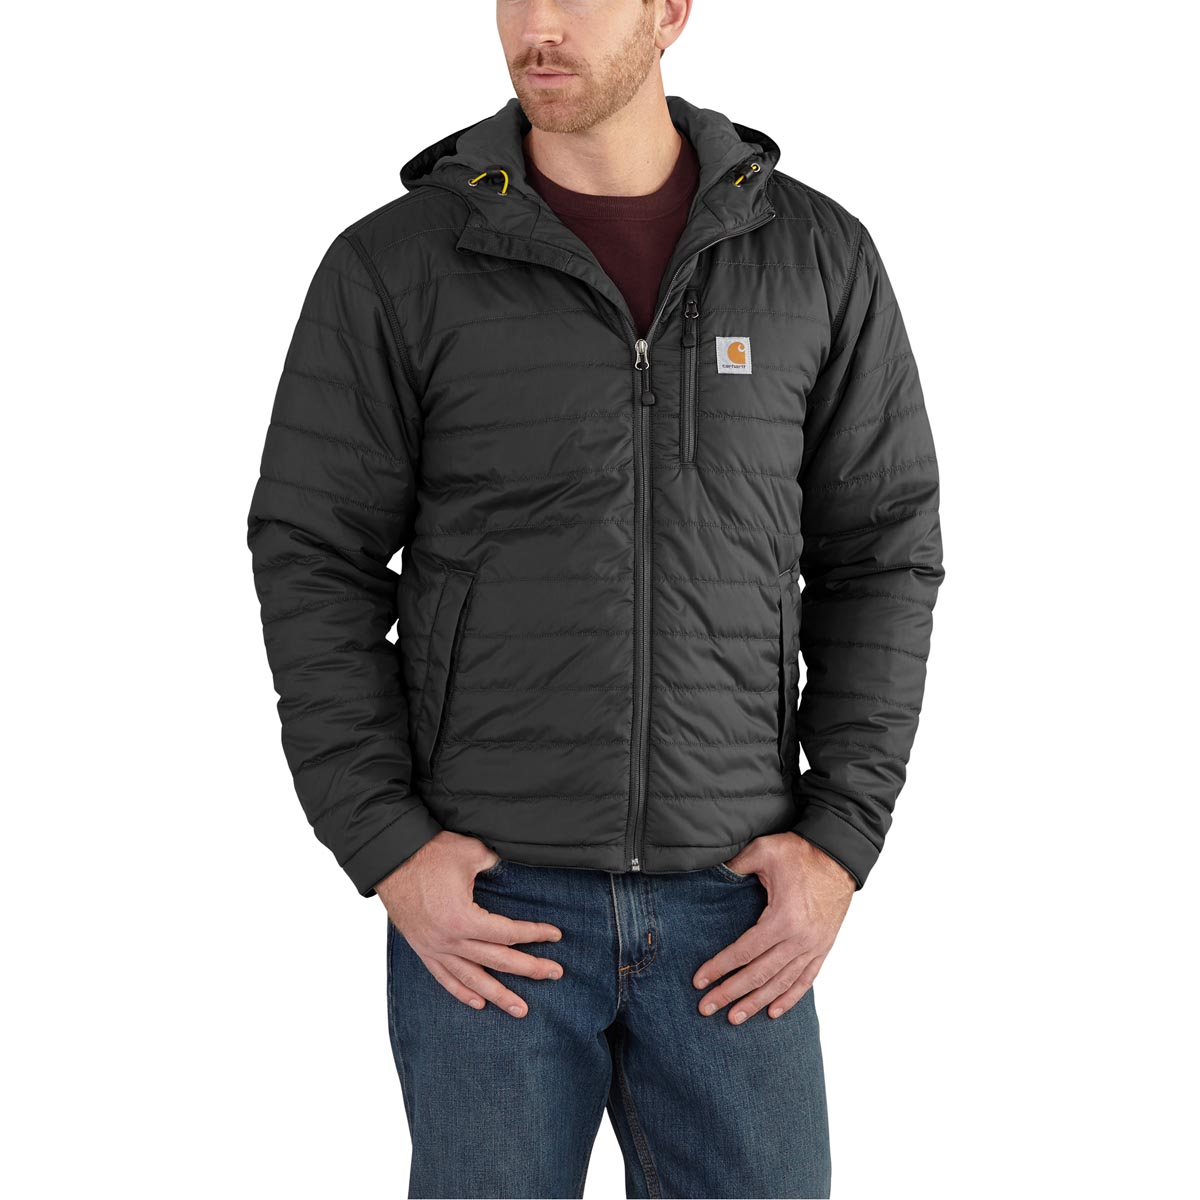 Carhartt Men's Gilliam Hooded Jacket